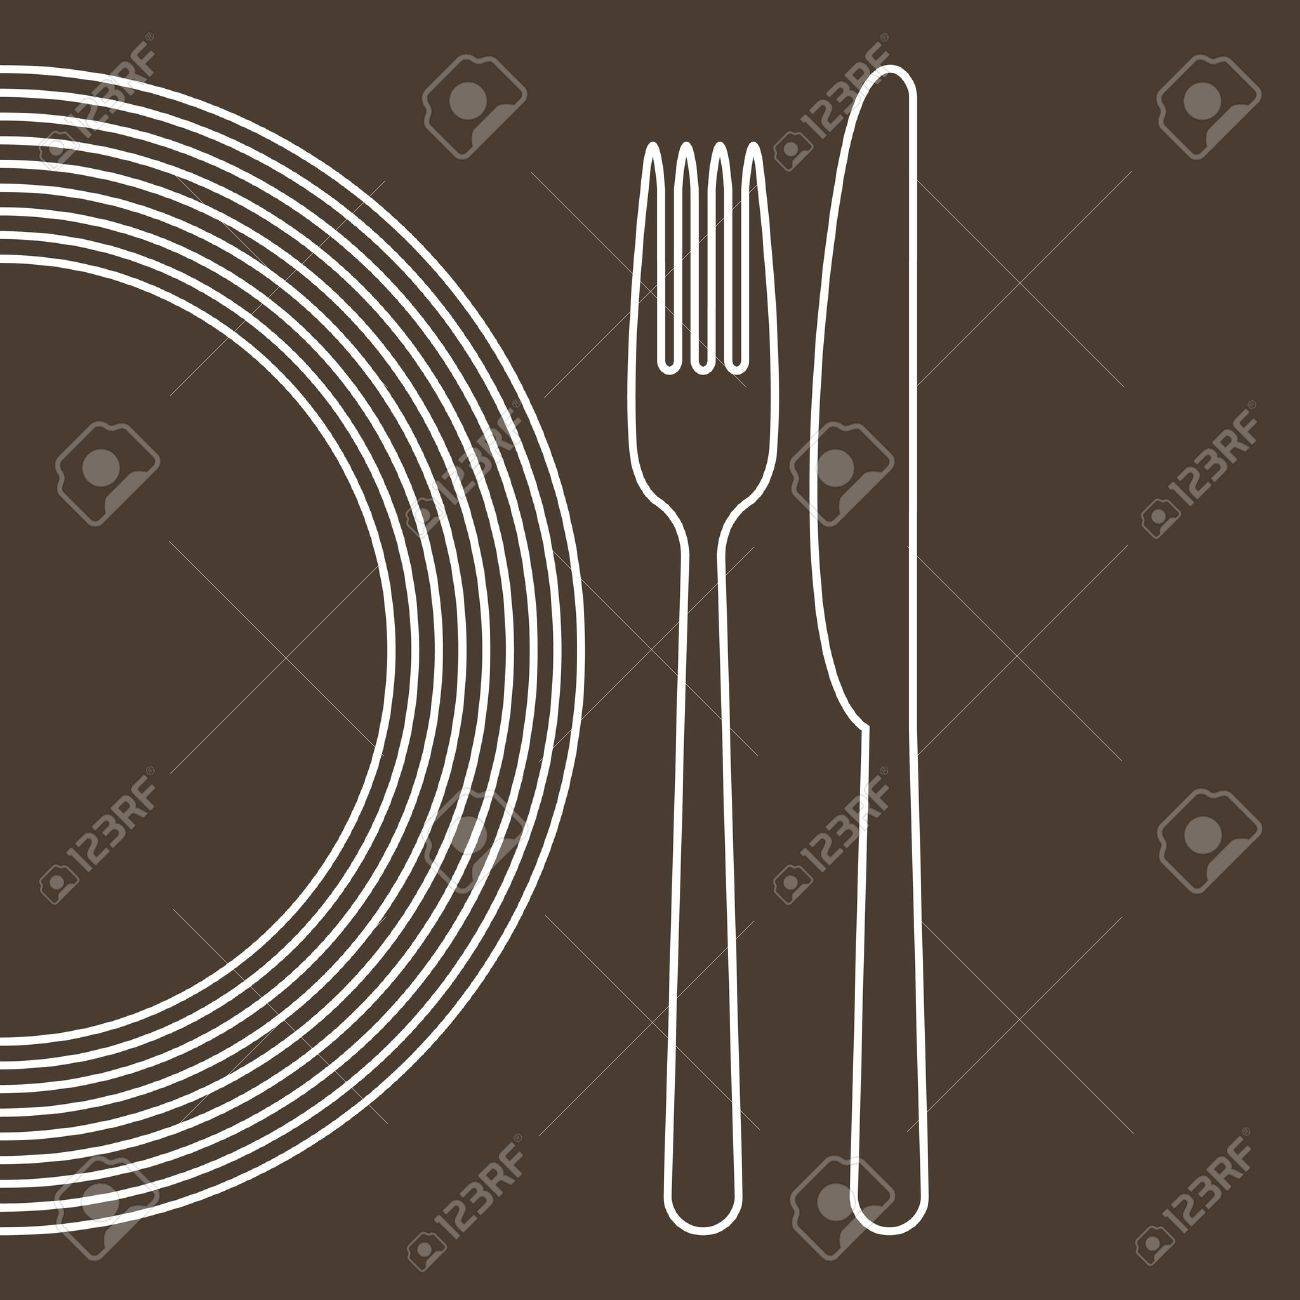 Plate, knife and fork - 14467837